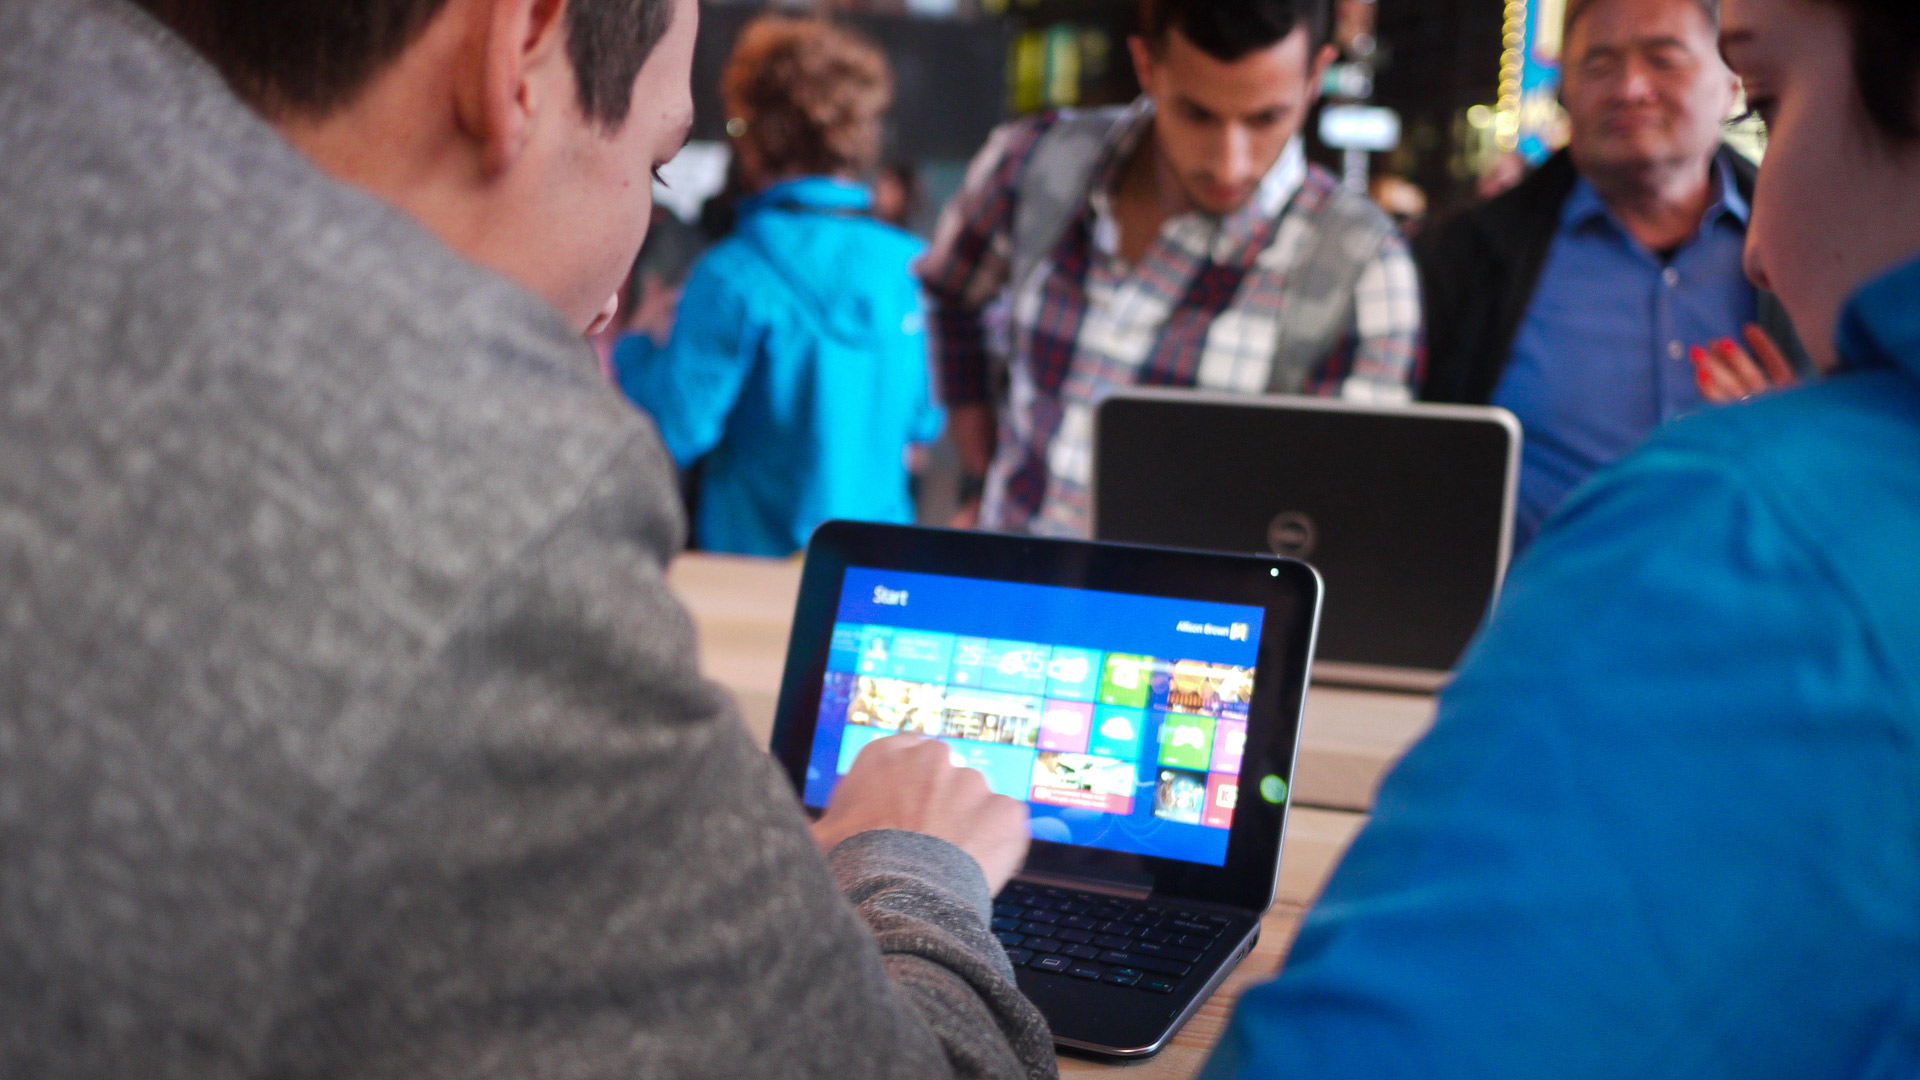 Microsoft Says You're Getting Used to Windows 8 | Qarve